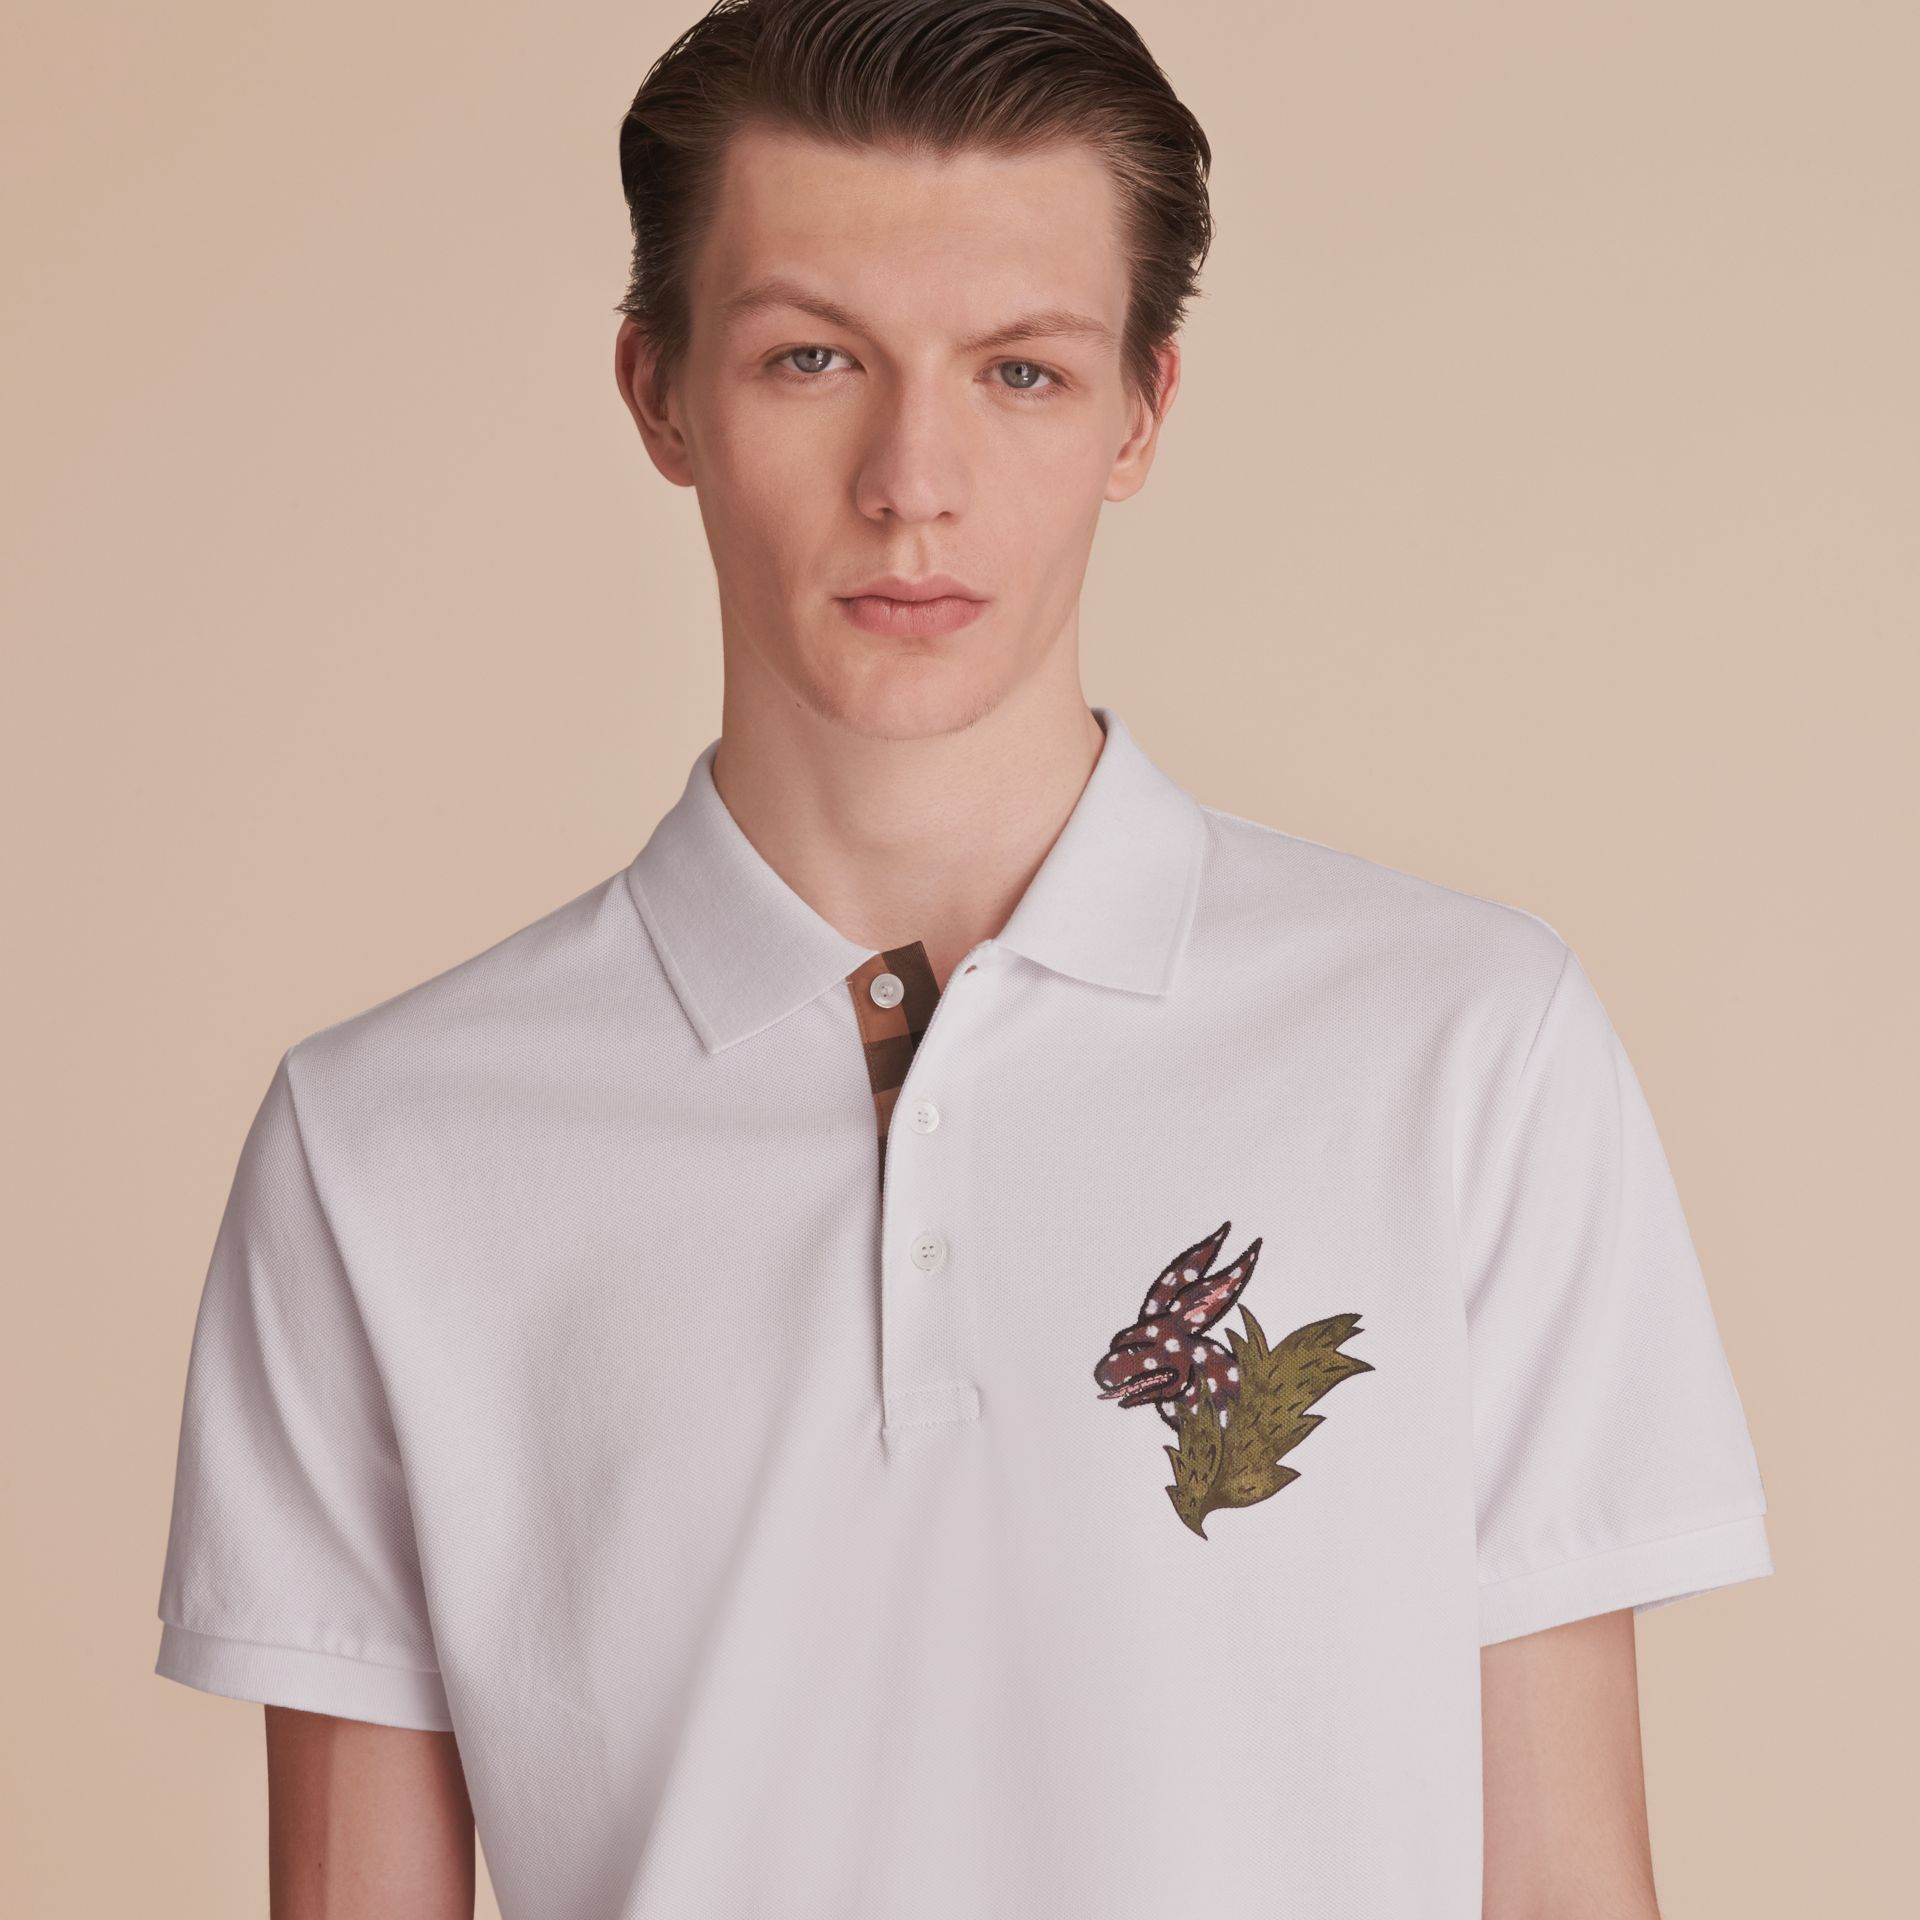 Beasts Motif Cotton Piqué Polo Shirt in White - Men | Burberry - gallery image 5